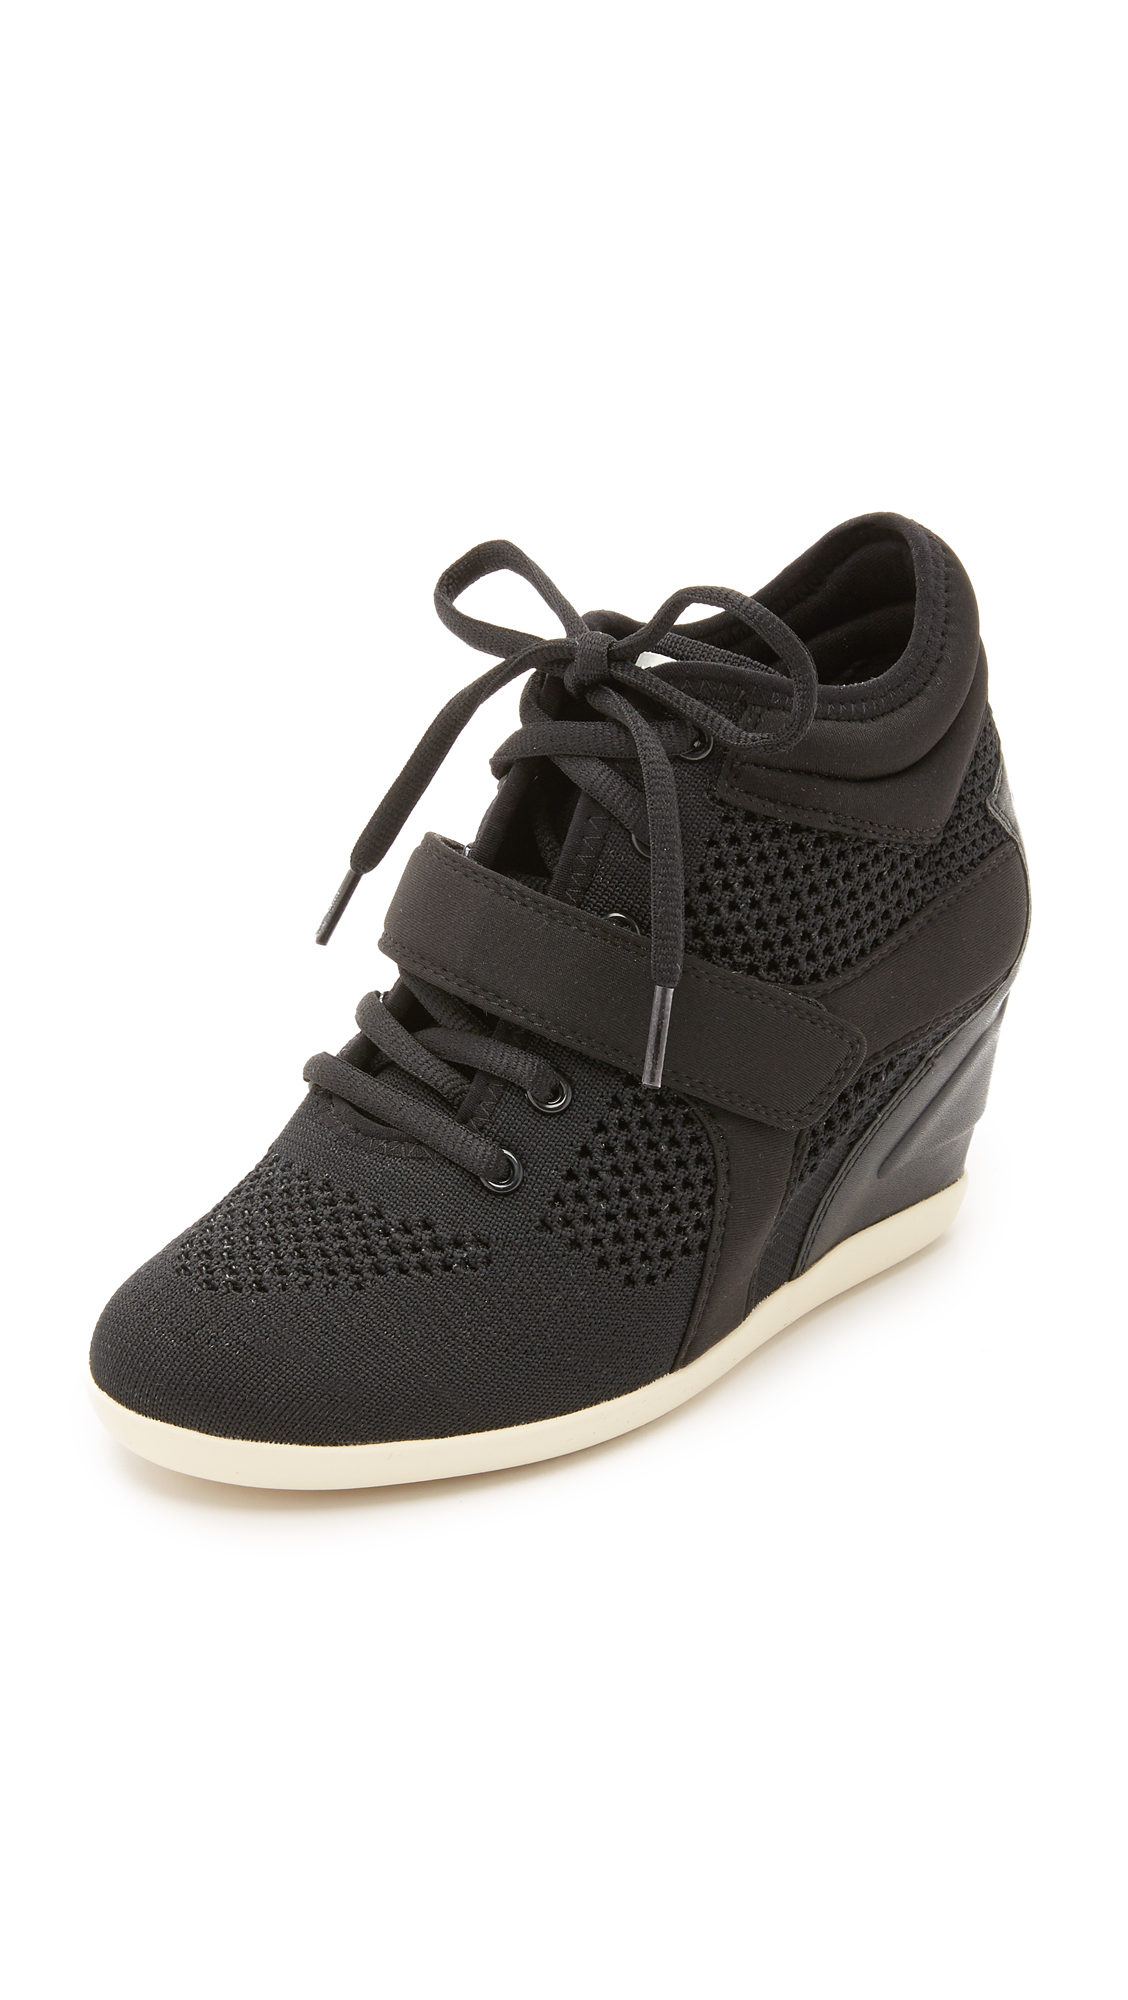 614dbbc027ca Gallery. Previously sold at  Shopbop · Women s Wedge Sneakers Women s Ash  ...